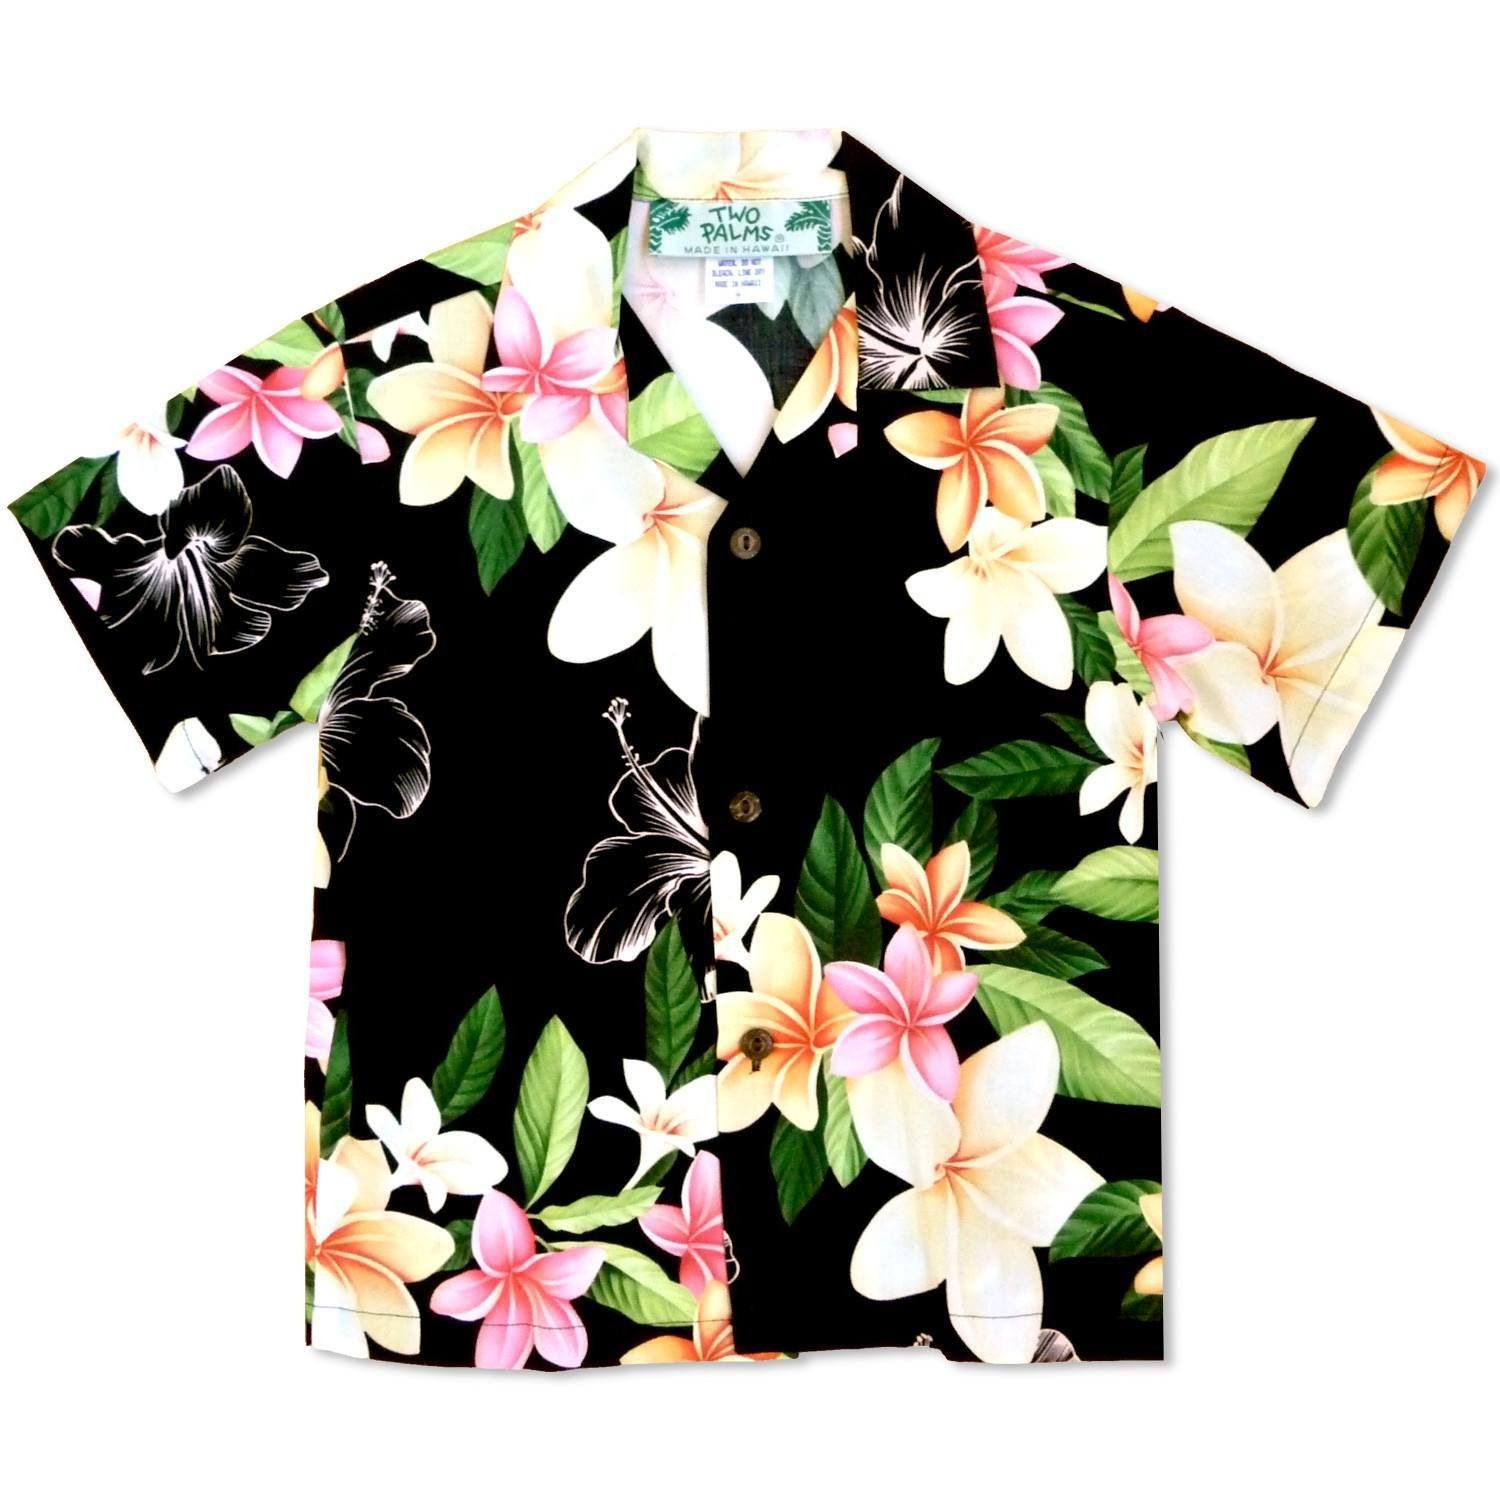 61291719 Pebble Black Hawaiian Boy Shirt | Melbourne Shop Mood board | Boys ...